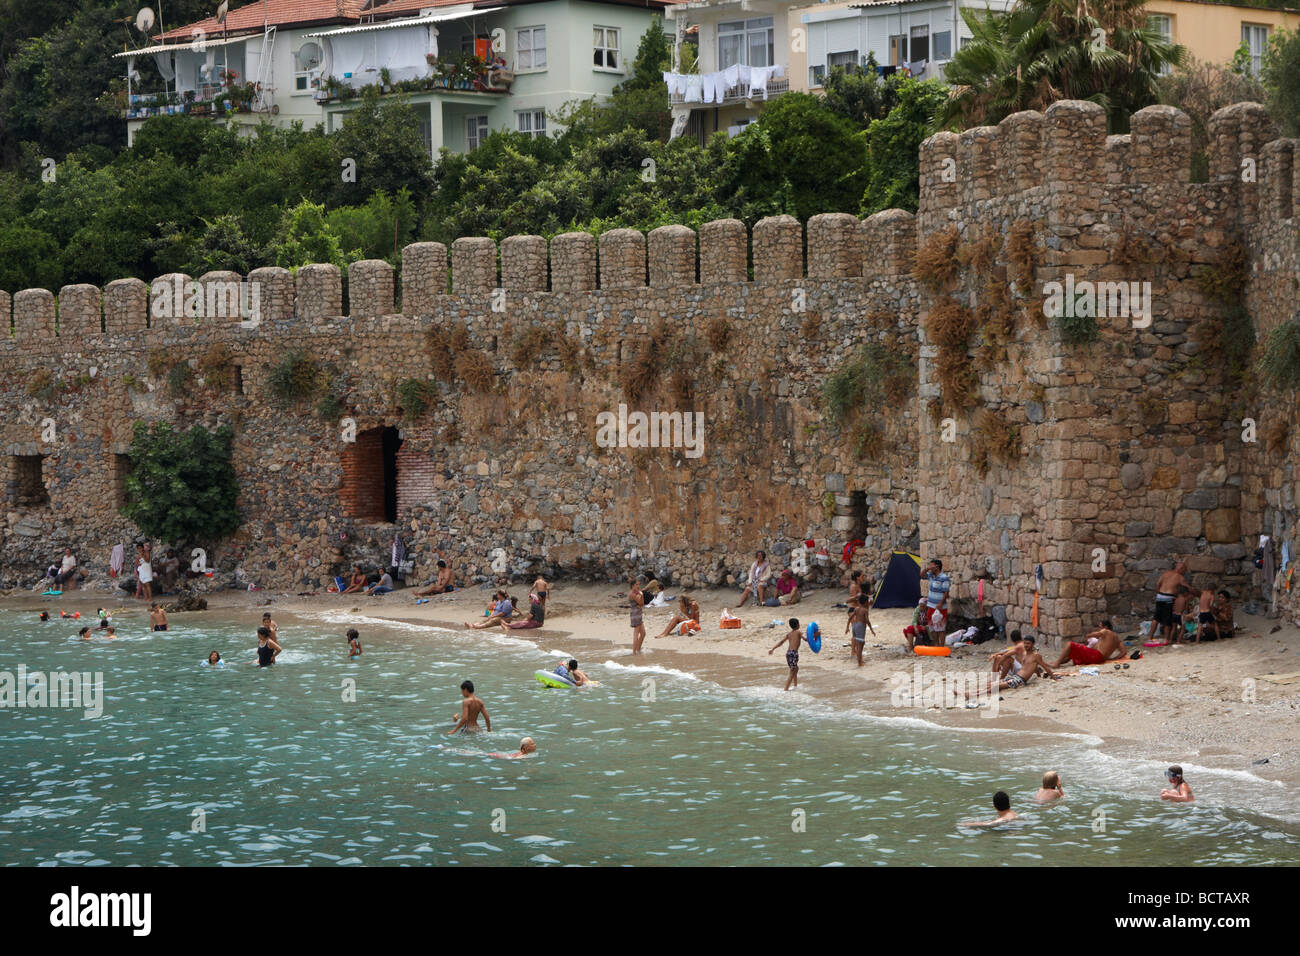 Harbour and Old Castle Alanya Turkey - Stock Image